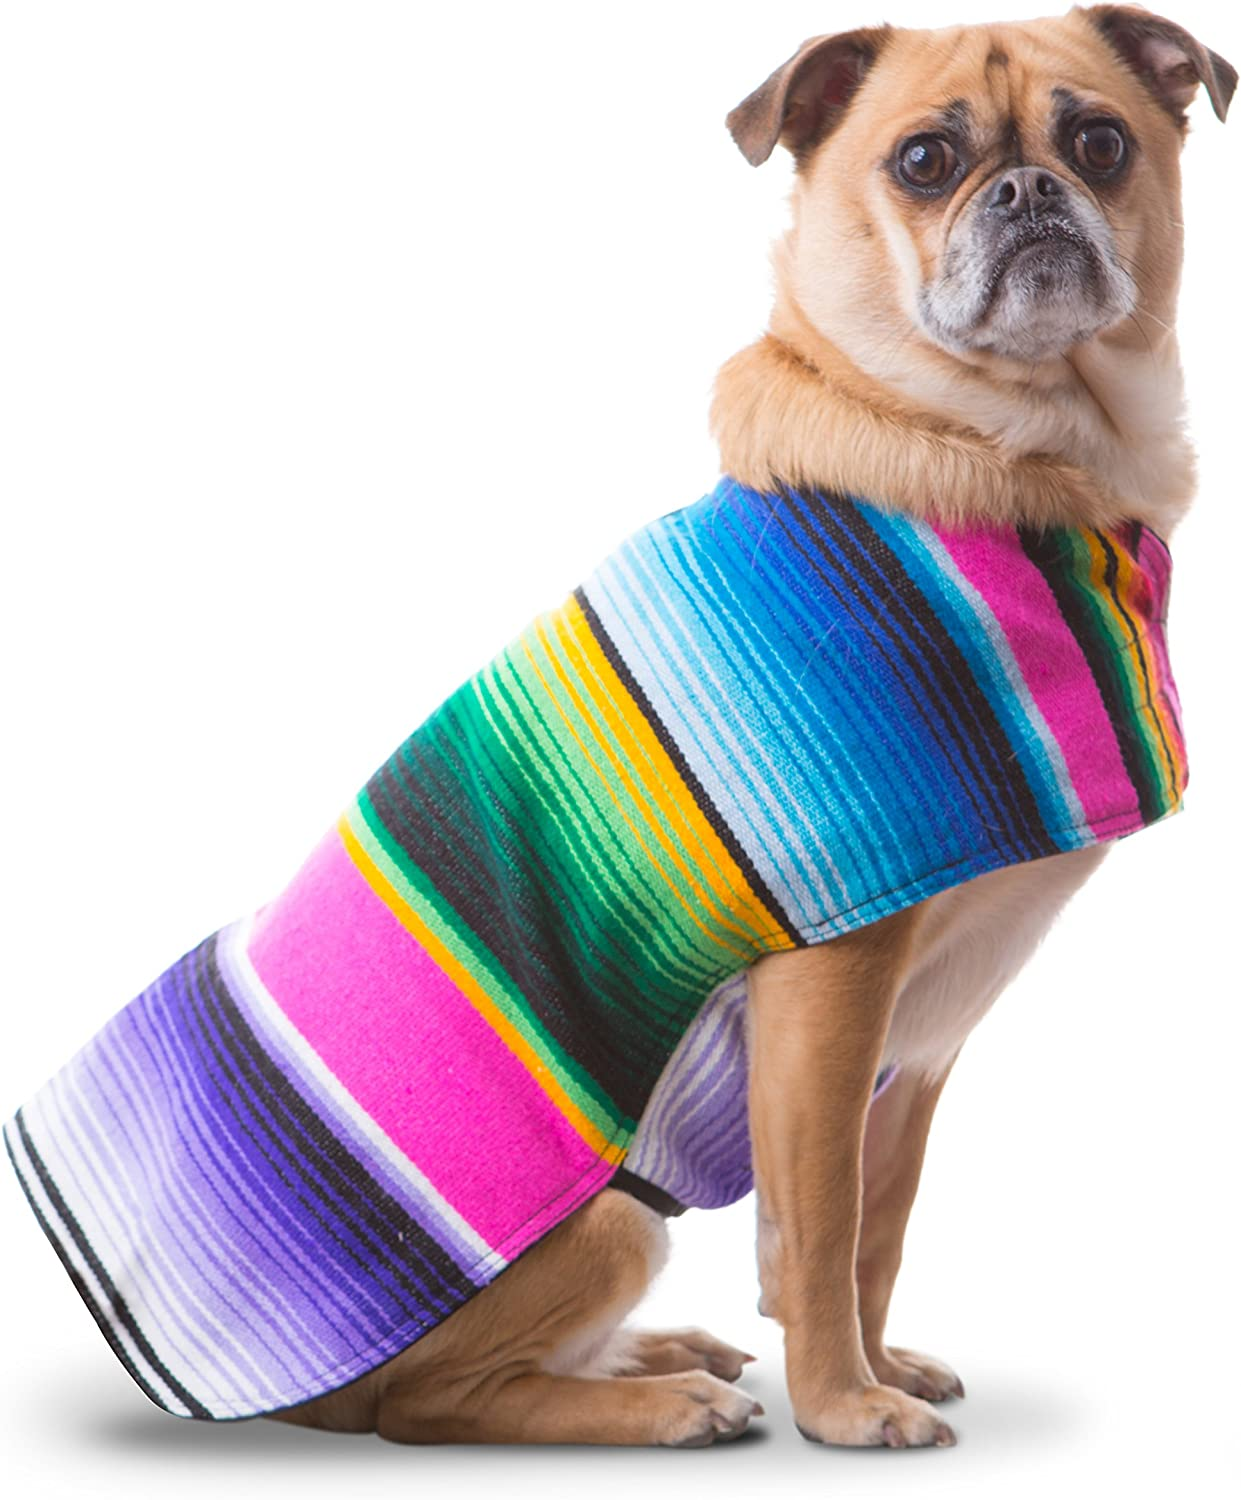 Baja Ponchos Dog Clothes  Handmade Dog Poncho from Authentic Mexican Blanket (Pink No Fringe, Medium)